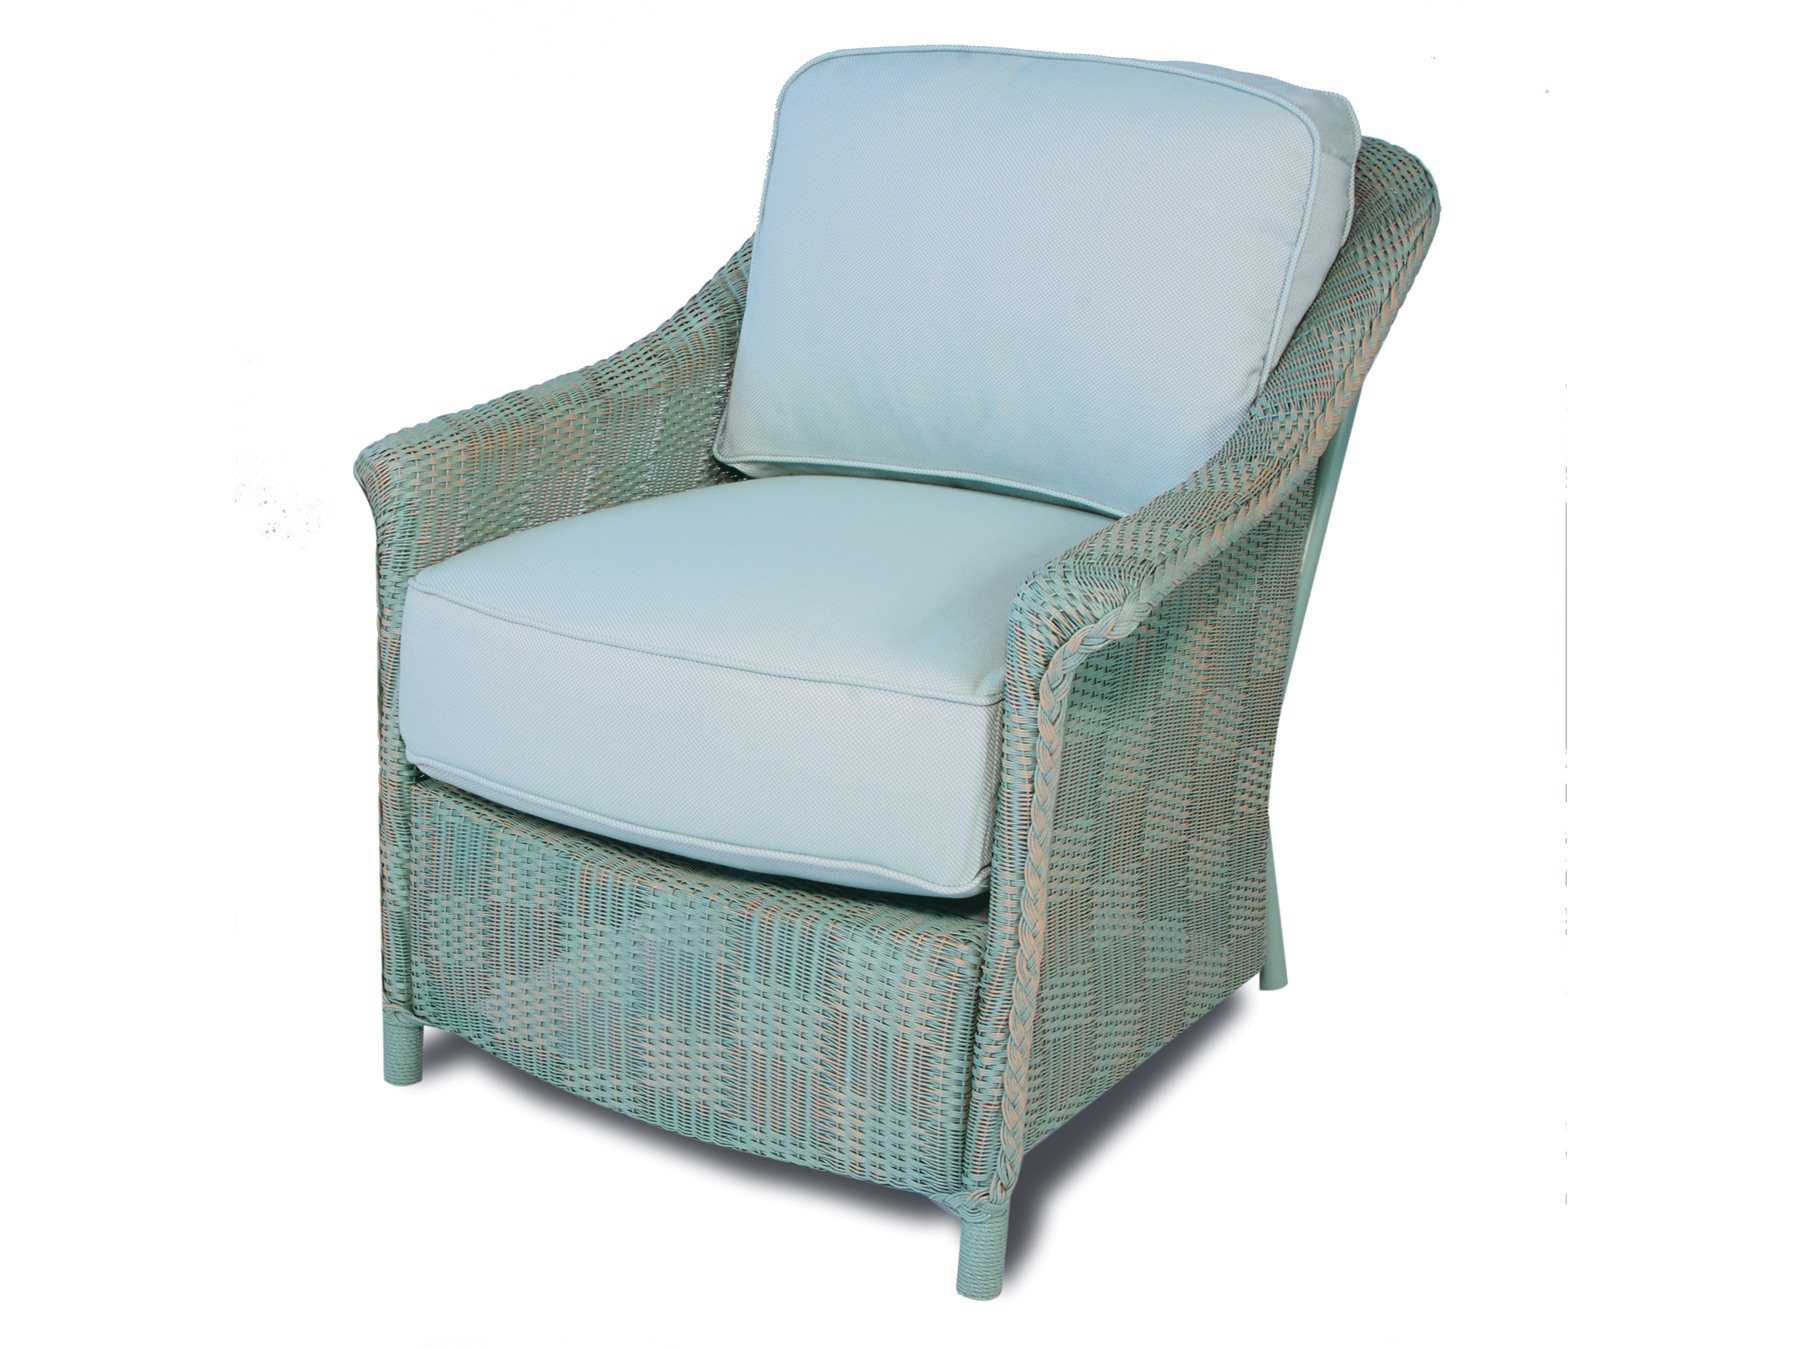 Calypso Replacement Cushions Replacement Cushion Lounge Chair/Rocker ...